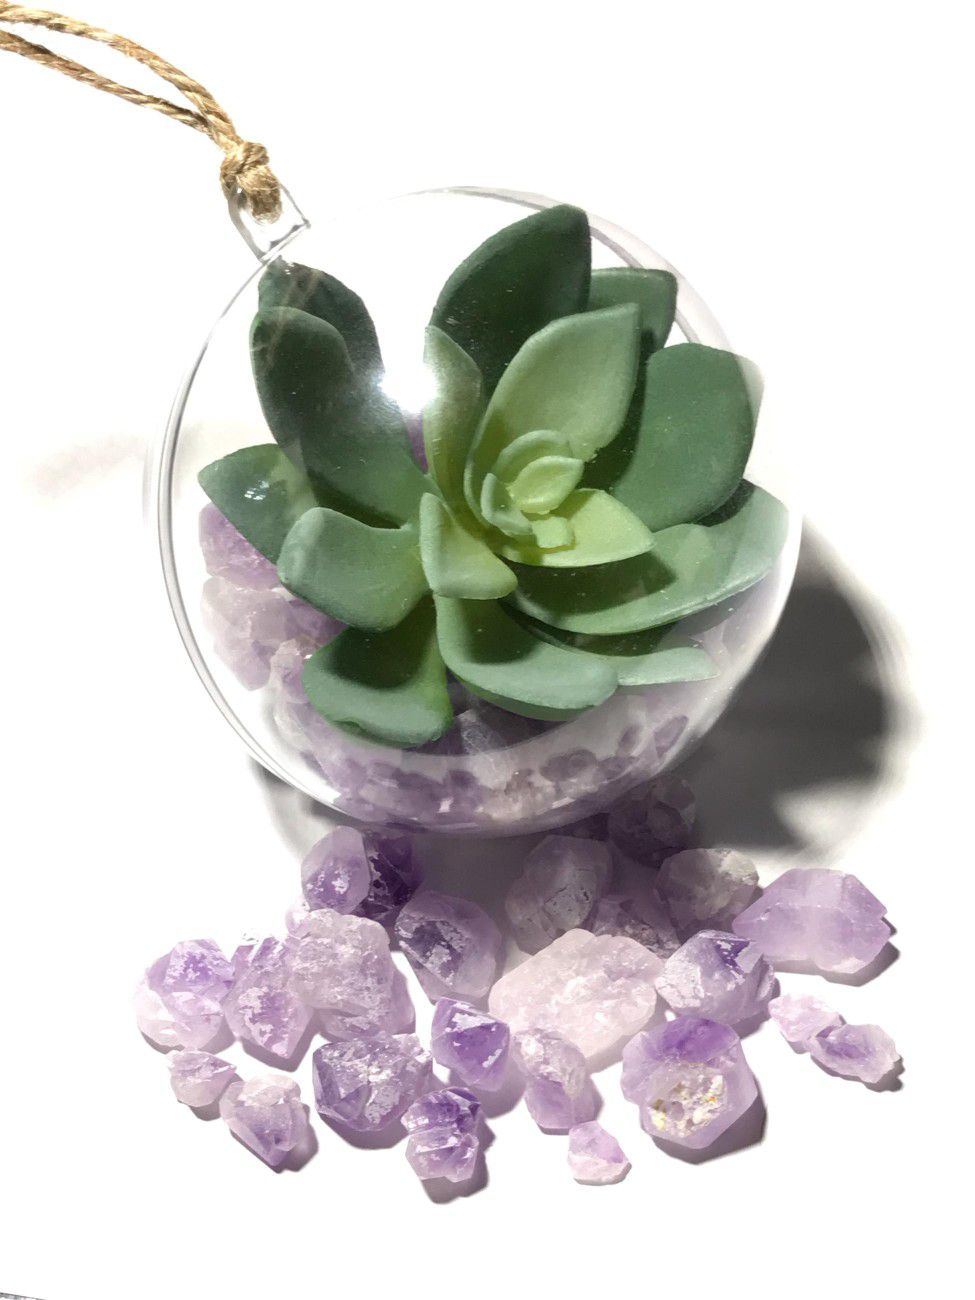 Vehicle mirror hanging decor with amethyst and artificial succulent